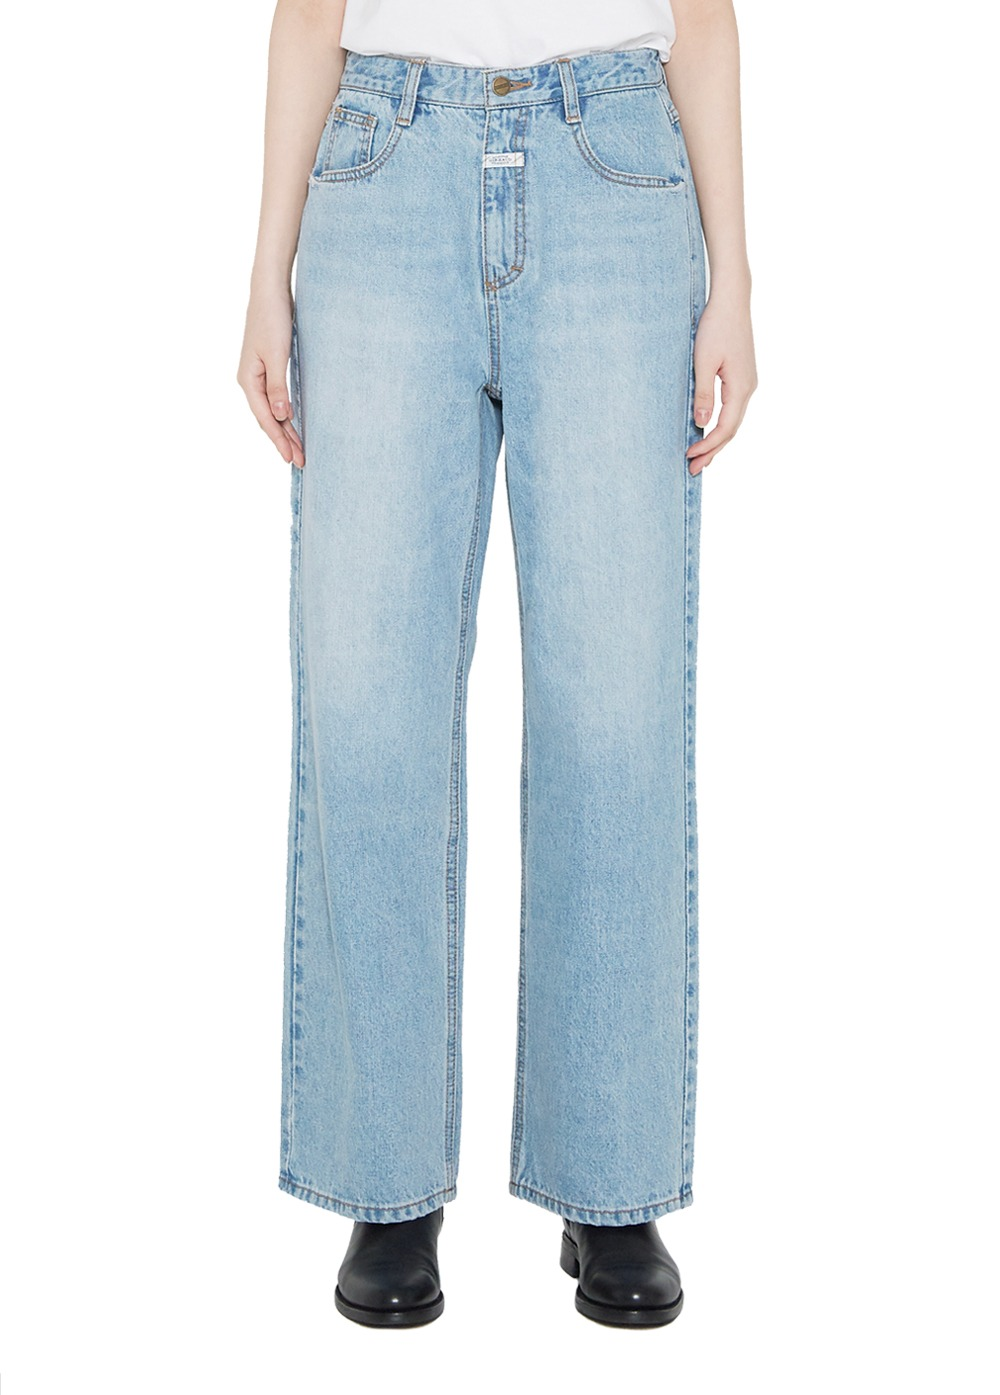 MARITHE W WIDE JEANS light blue